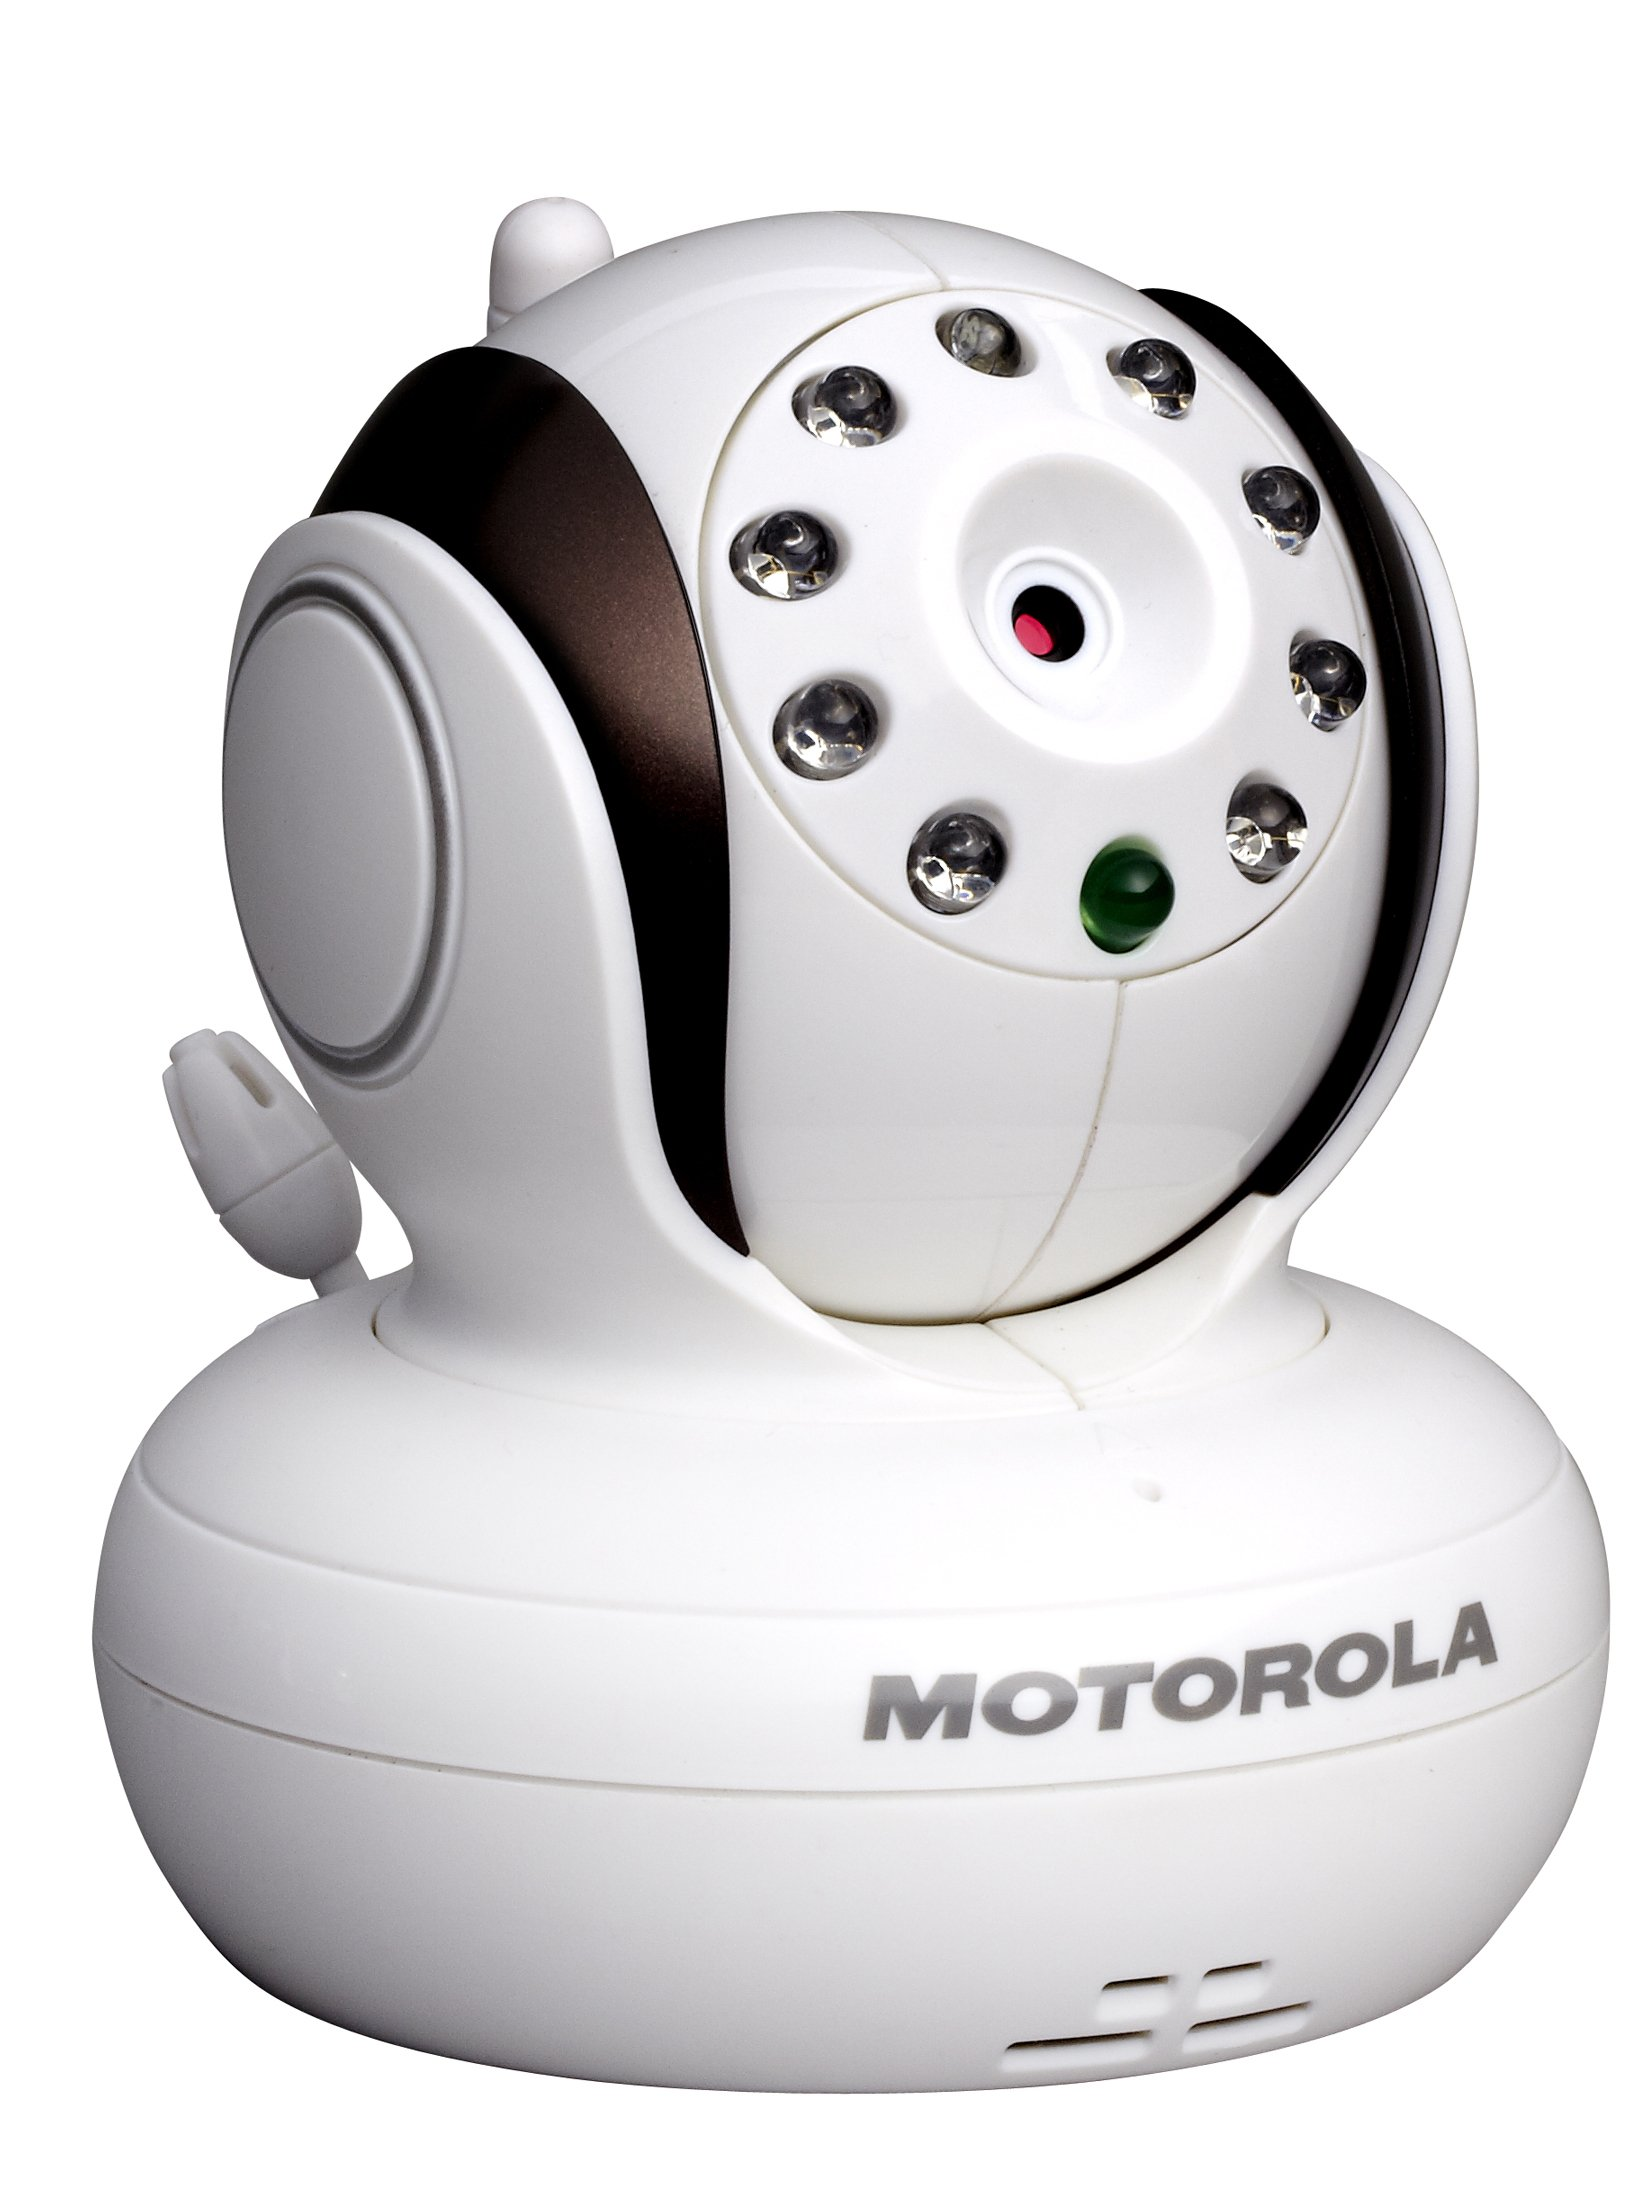 Motorola Additional Camera for Motorola MBP33 and MBP36 Baby Monitor,Brown with White by Motorola (Image #2)